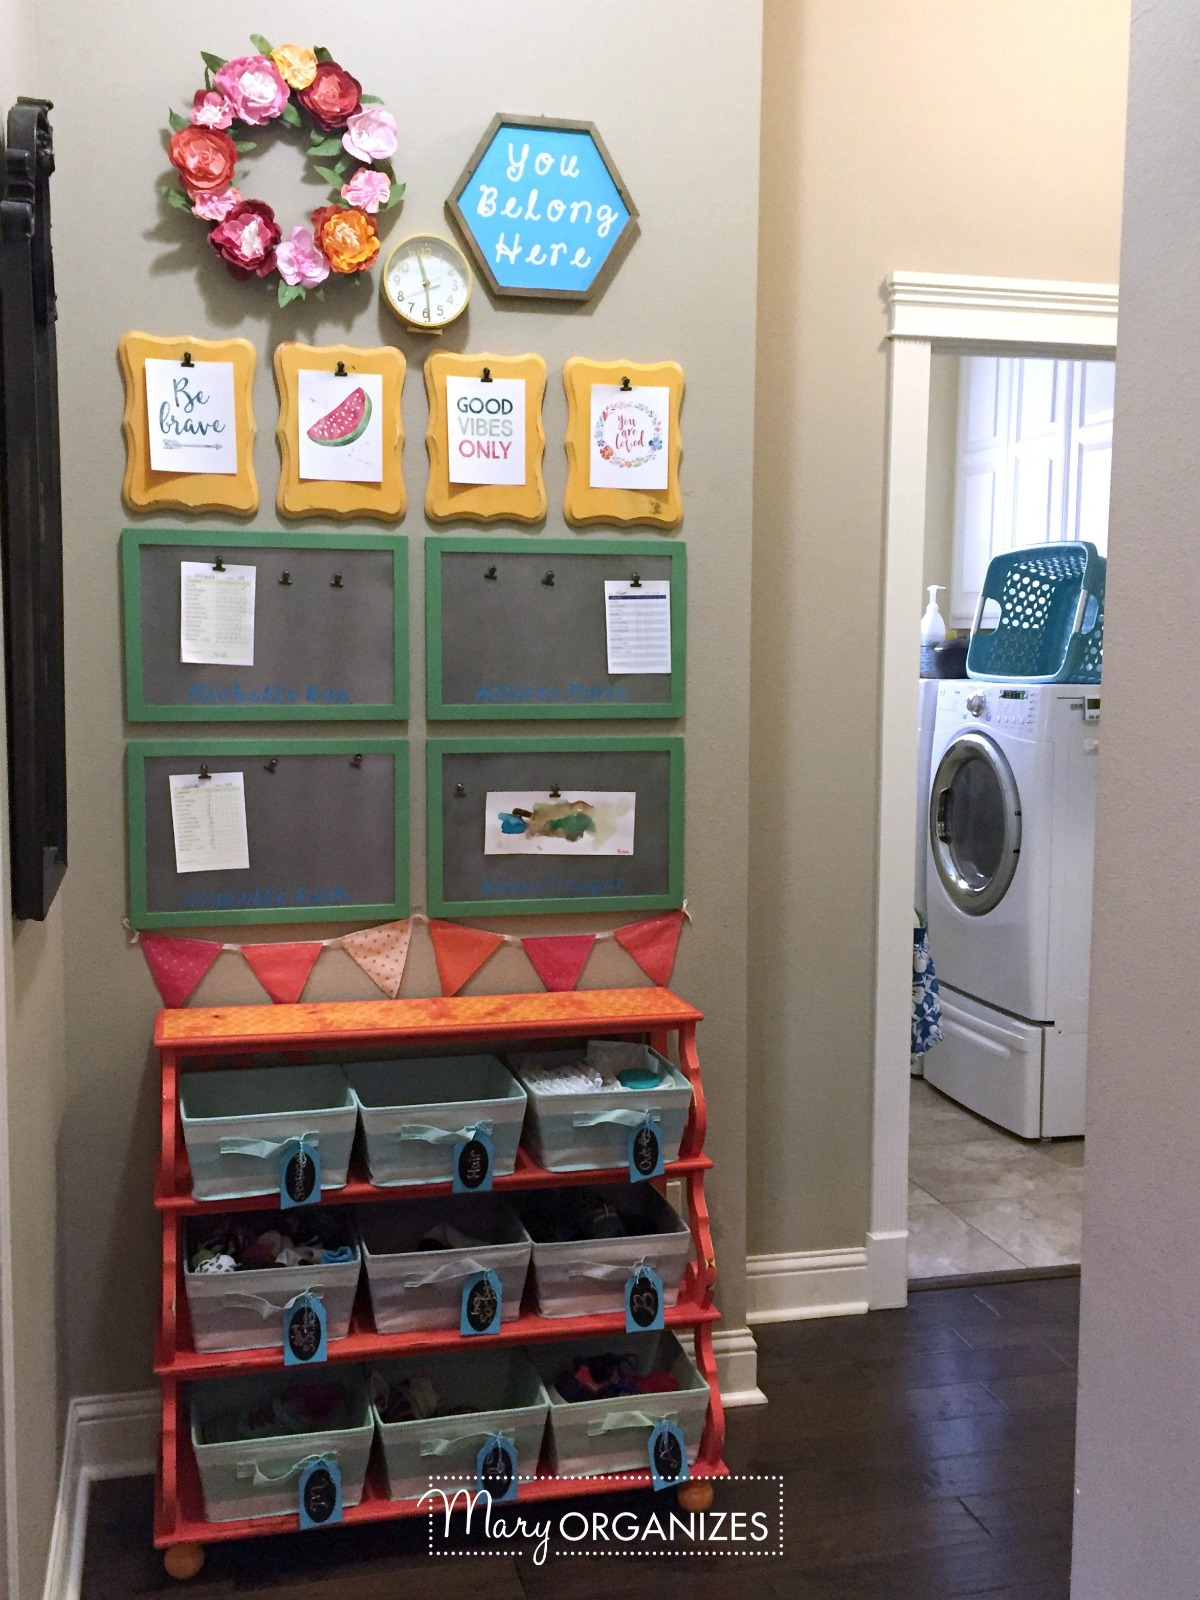 Kids Command Center - for hanging chore lists and more 9